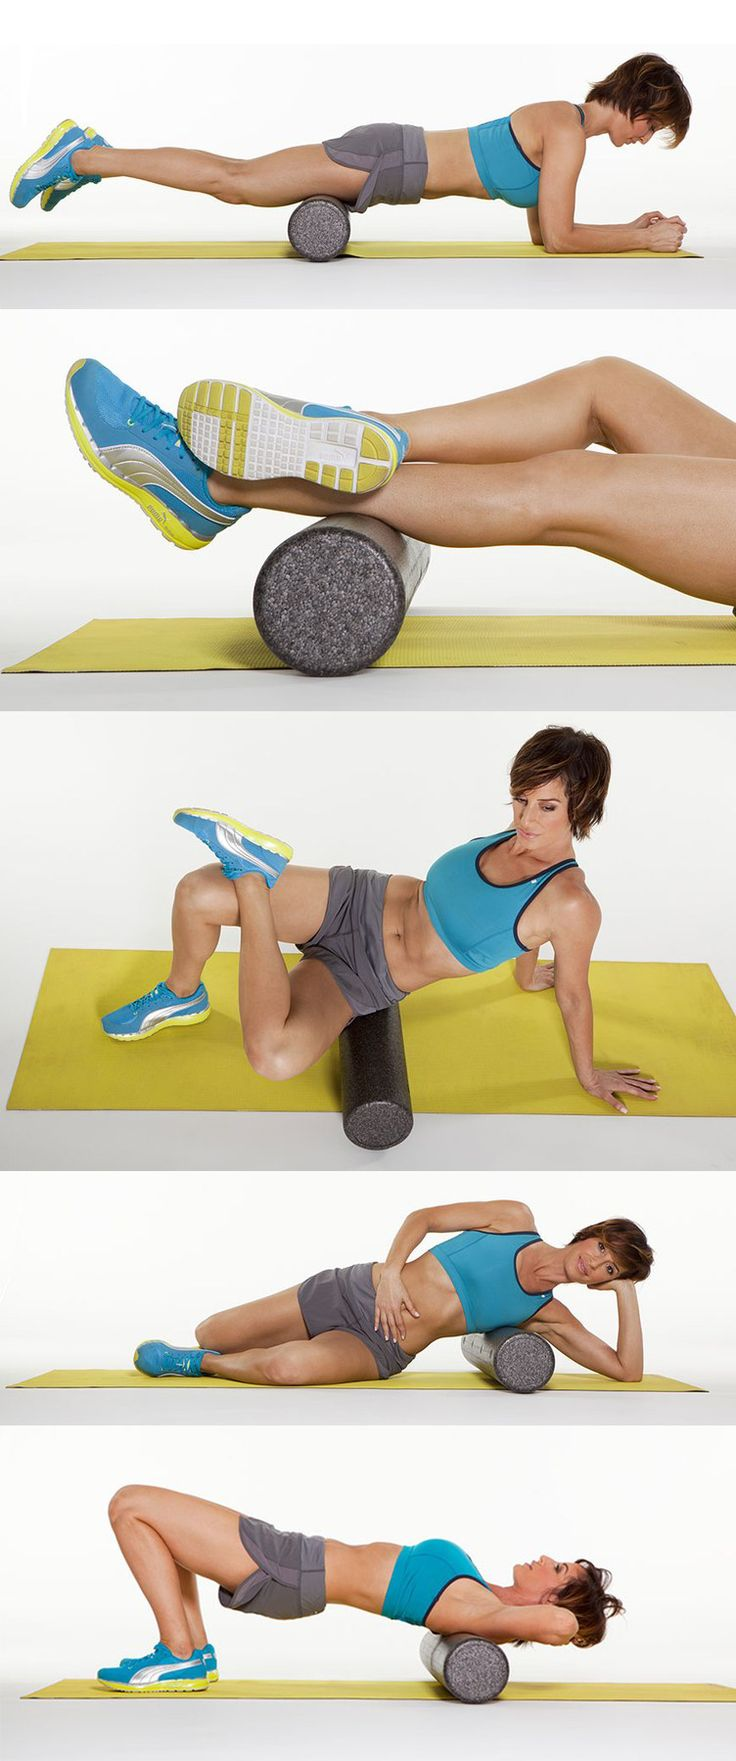 While the benefits of foam rolling regularly are pretty spectacular, knowing exactly how to use the workout tool can be a little confusing. If you're ready to start a regular foam rolling routine, or just want to make sure you're doing the moves correctly, we've got you covered with step-by-step instructions.